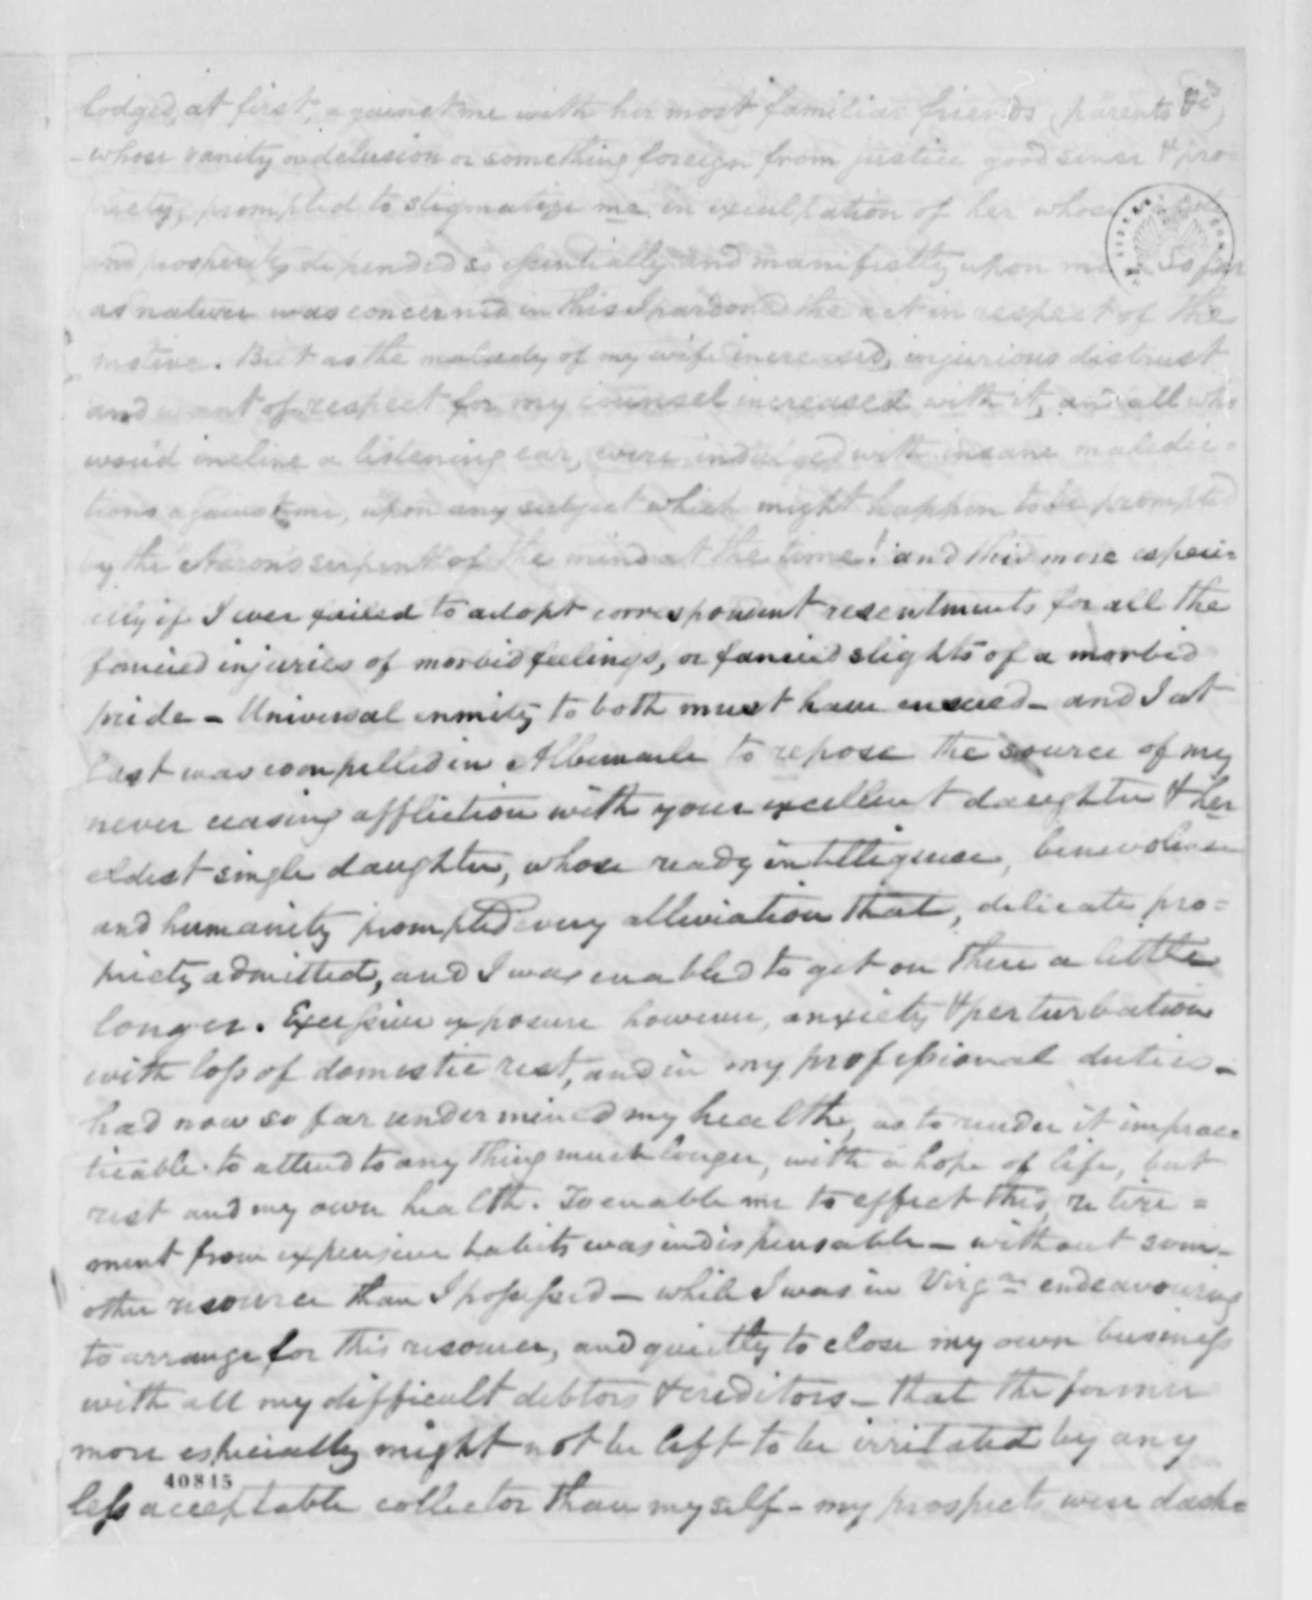 Thomas G. Watkins to Thomas Jefferson, February 12, 1825